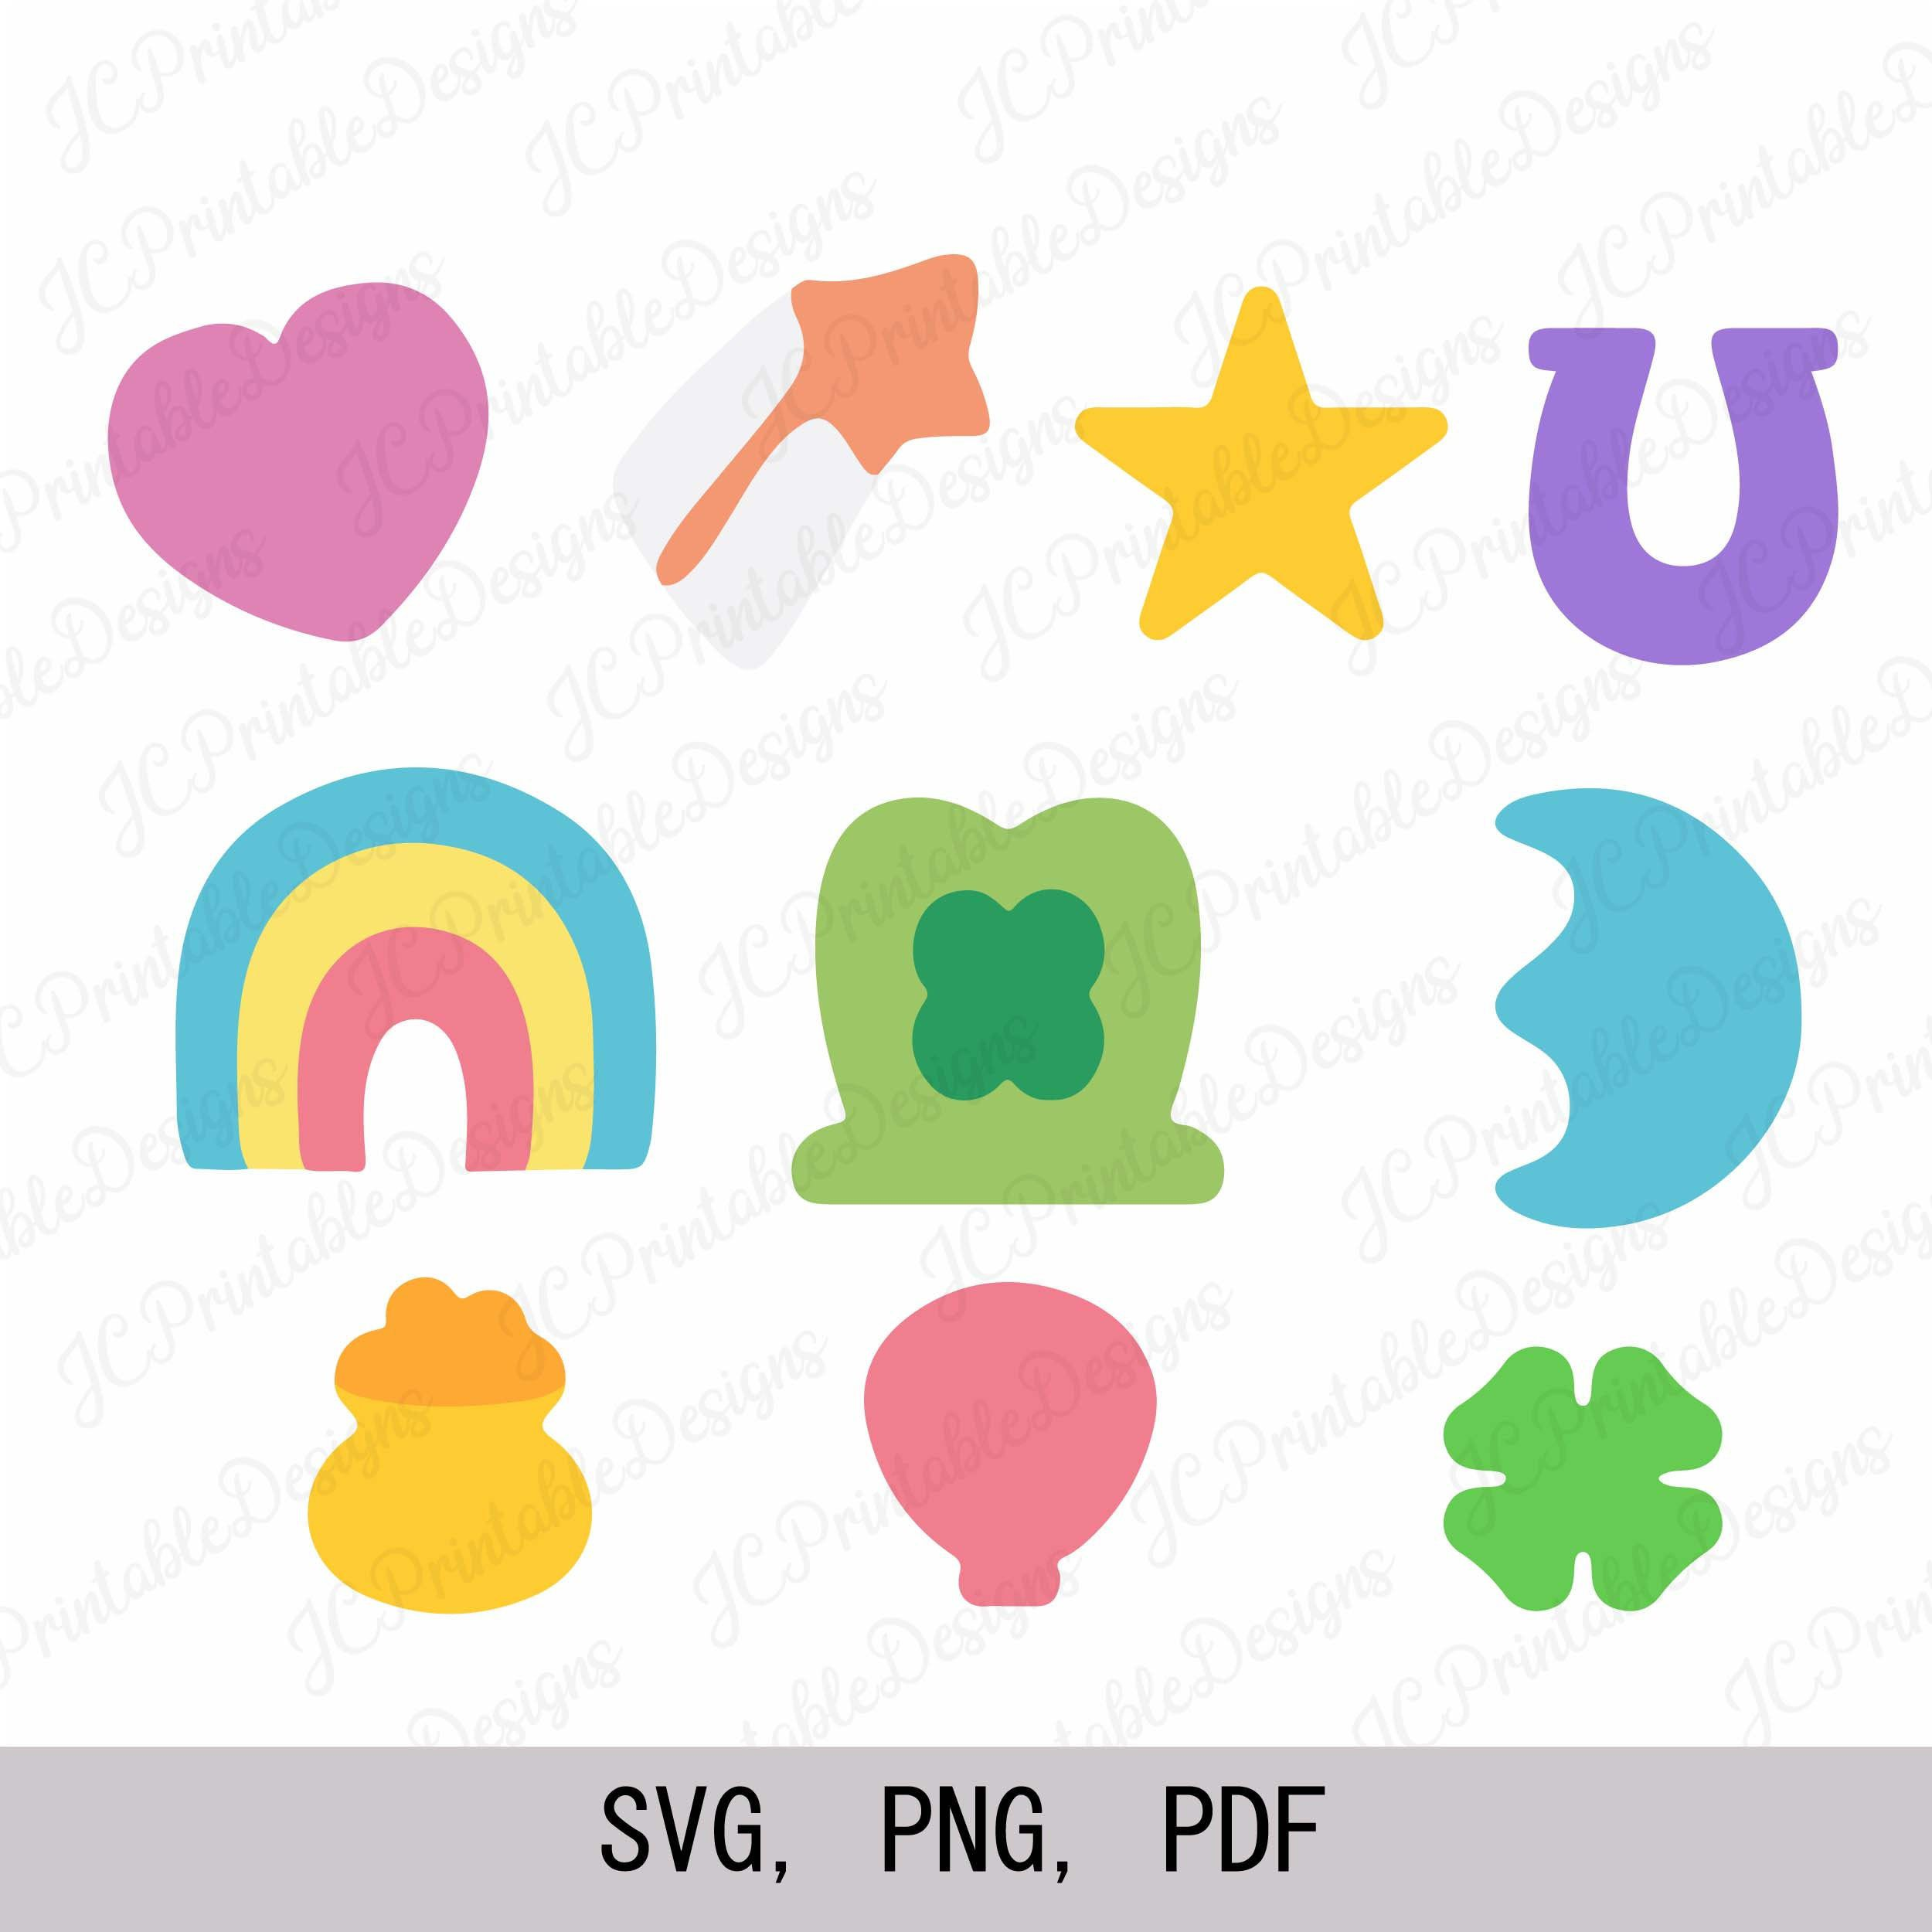 Lucky Charms Svg Lucky Charms Clipart Etsy In 2021 Lucky Charm Cartoon Clip Art Valentine Crafts For Kids